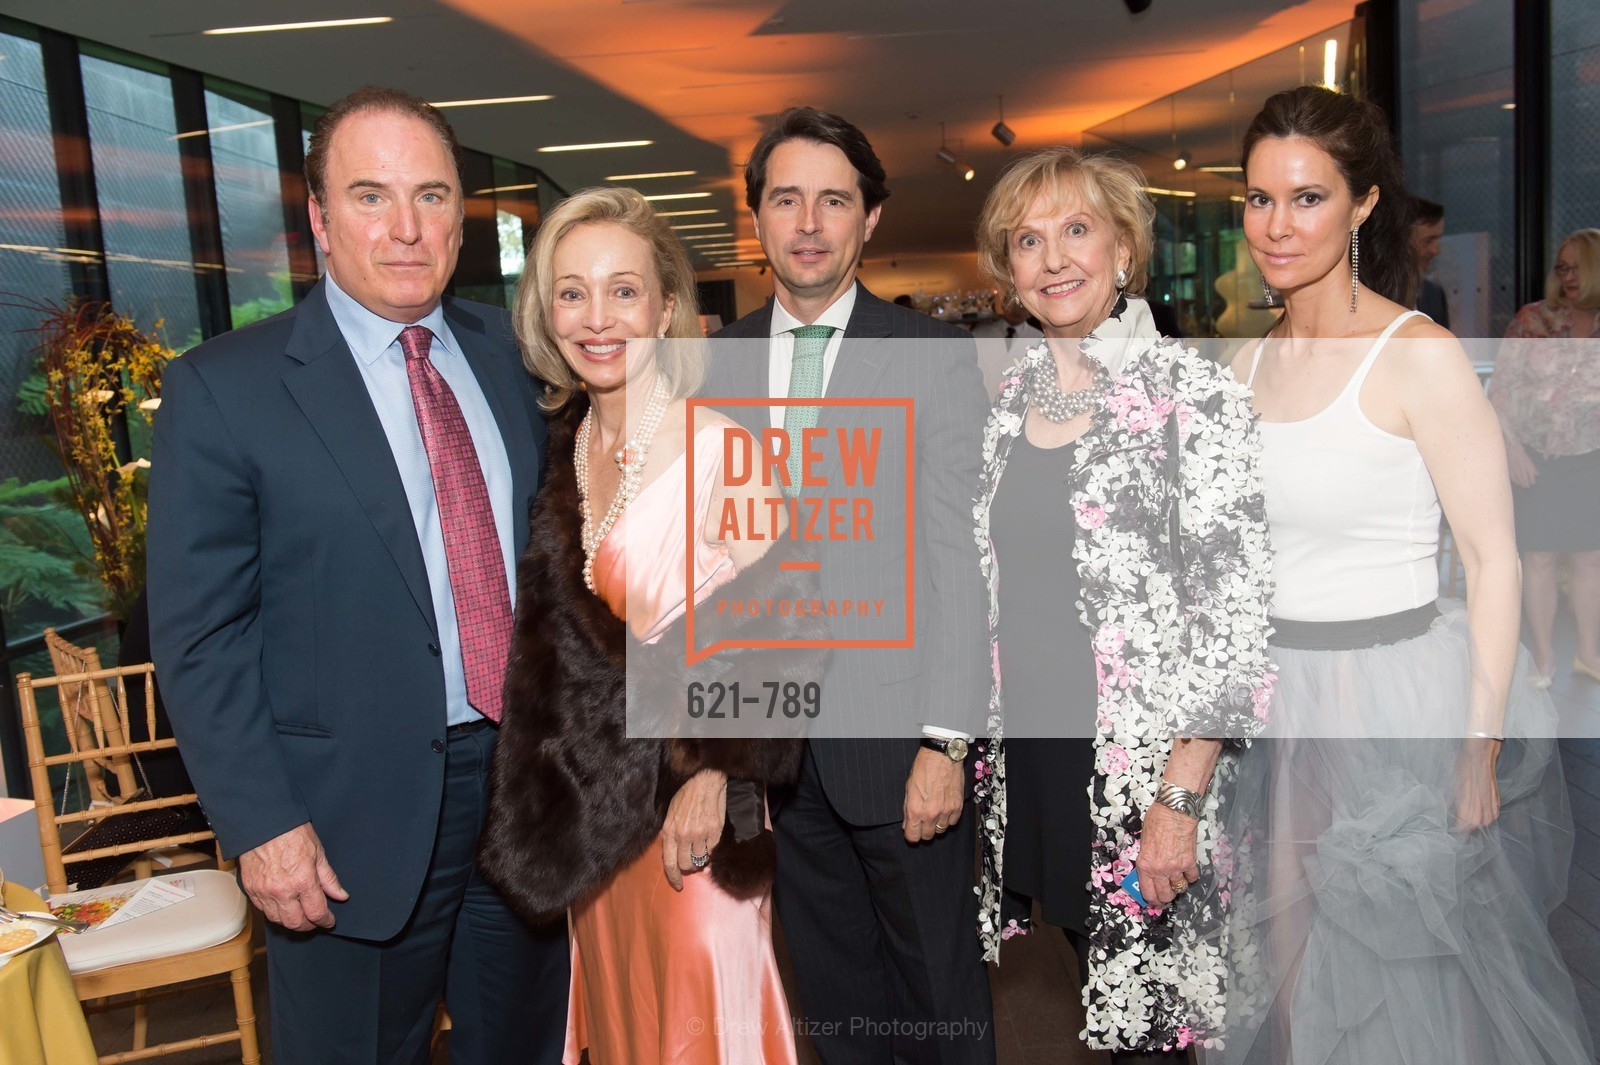 Richard Carpeneti, Deborah Carpeneti, Nuno Mathias, Judith Heuser, ALONZO KING LINE'S Ballet Spring Gala 2015, US, April 12th, 2015,Drew Altizer, Drew Altizer Photography, full-service agency, private events, San Francisco photographer, photographer california